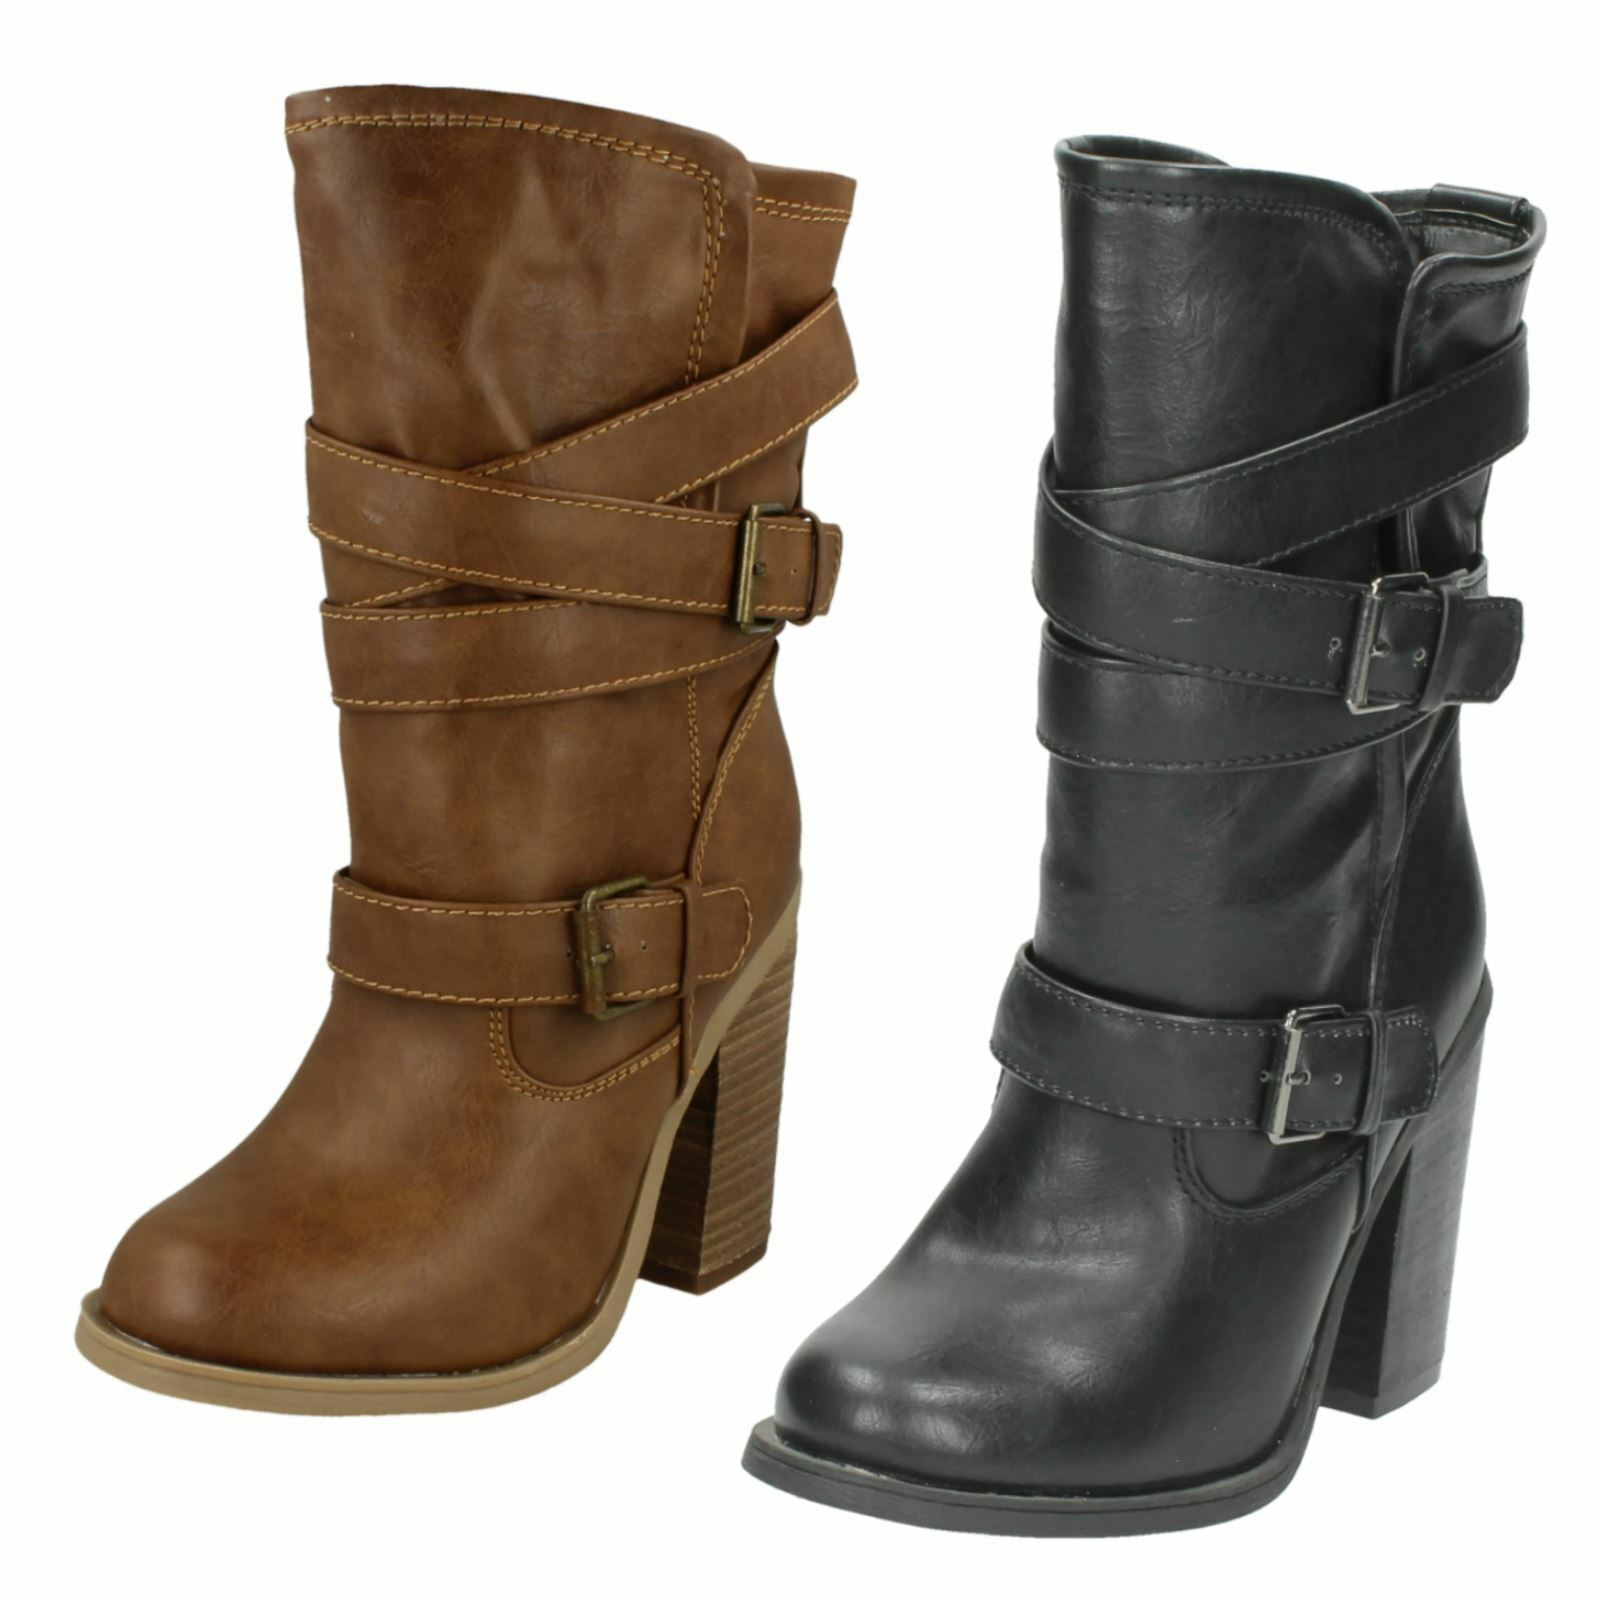 Ladies Spot On Calf Boot F5929 Black or Tan sizes 3-8 *REDUCED*